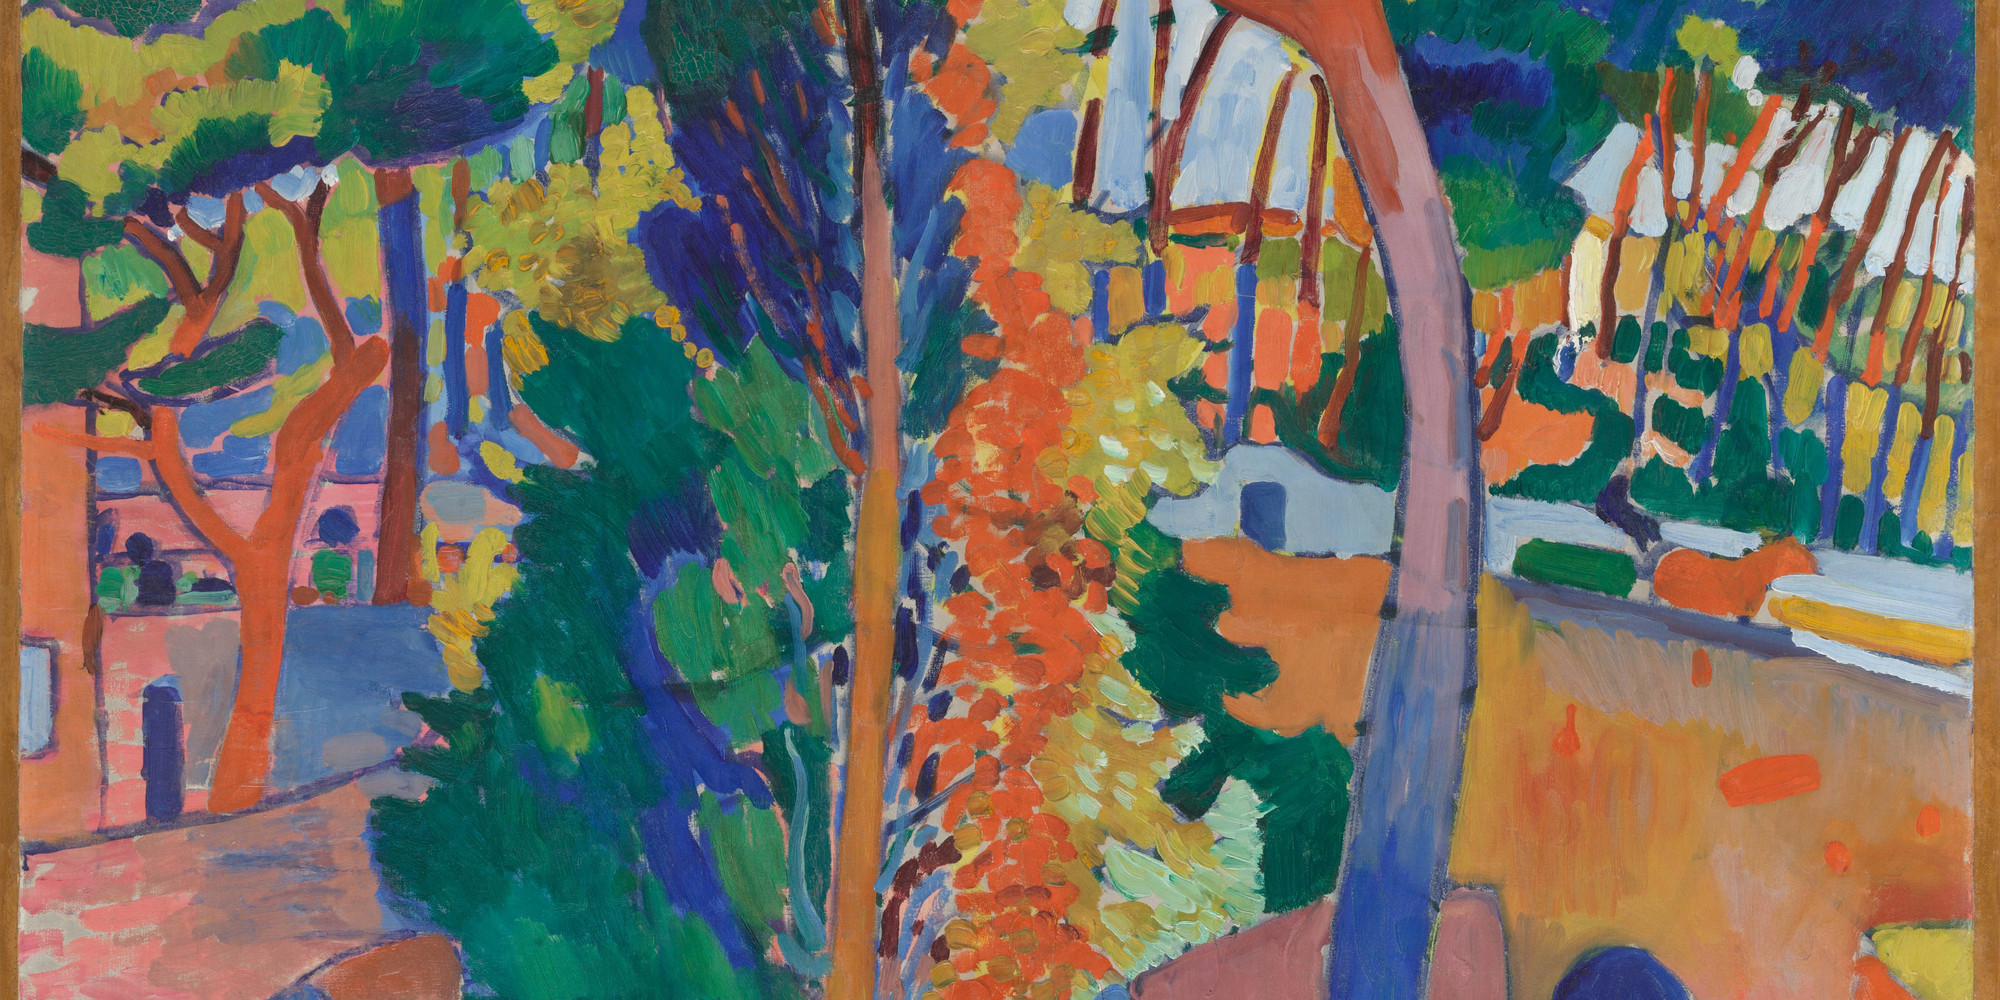 "André Derain. Bridge over the Riou. 1906. Oil on canvas, 32 1/2 × 40"" (82.6 × 101.6 cm). The William S. Paley Collection. © 2020 Artists Rights Society (ARS), New York/ADAGP, Paris"